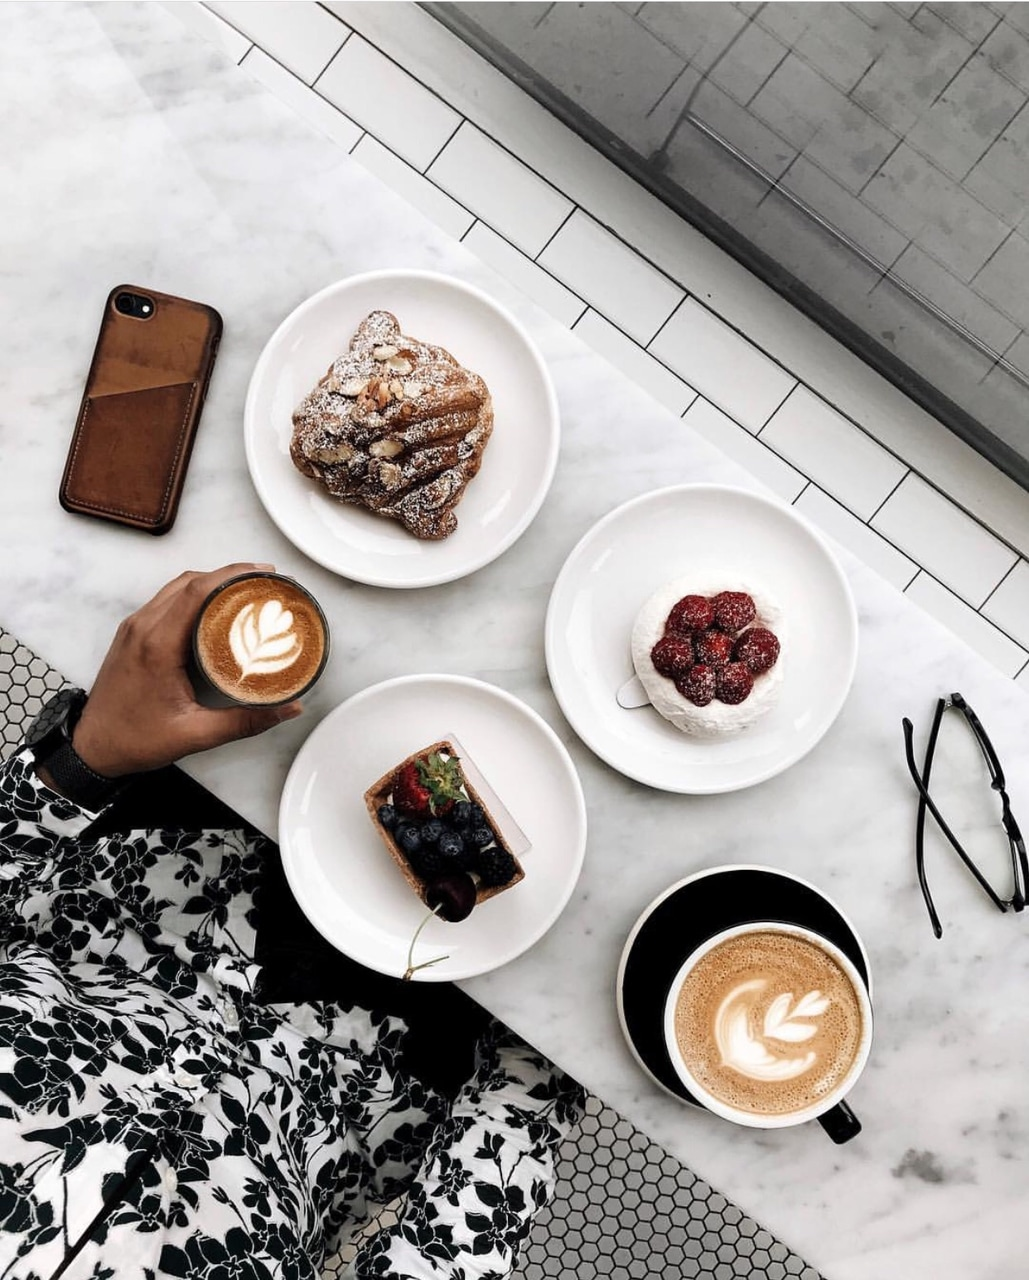 lifestyle, chic, desserts and cafe